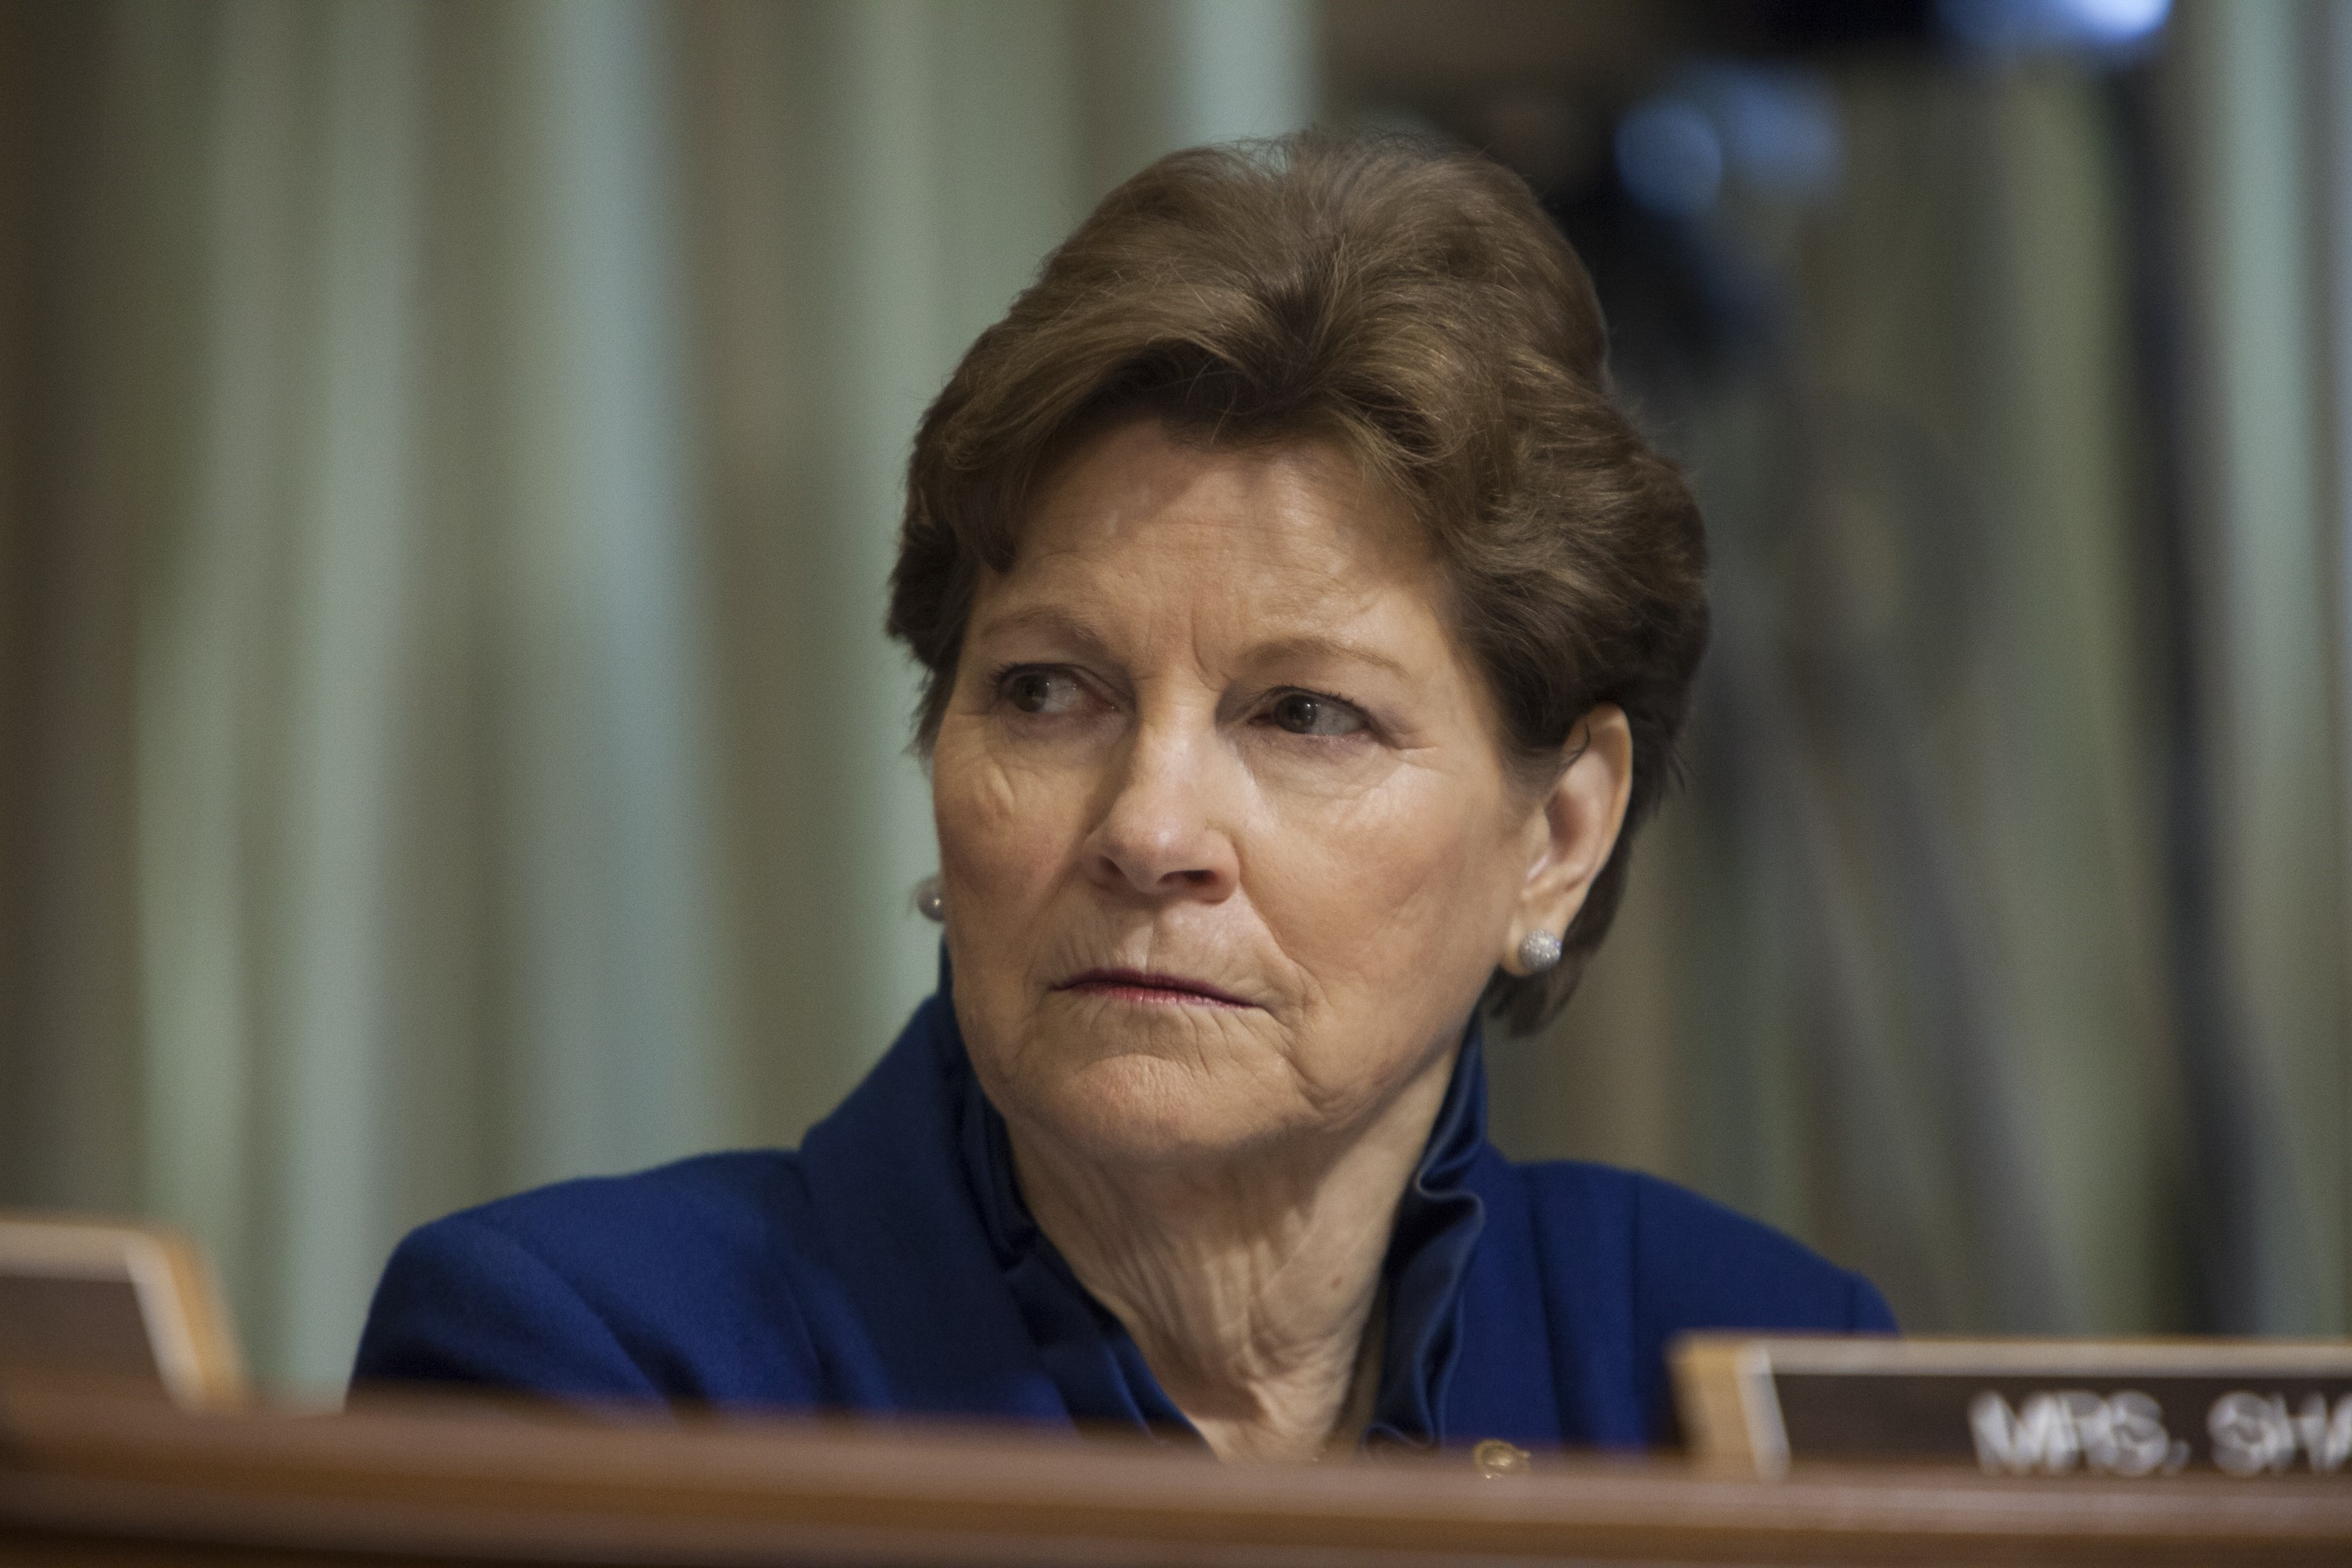 Senator Jeanne Shaheen listens to opening remarks during a Senate Foreign Relations Committee hearing on U.S. Policy In Ukraine in Washington, D.C., USA on March 10, 2015.